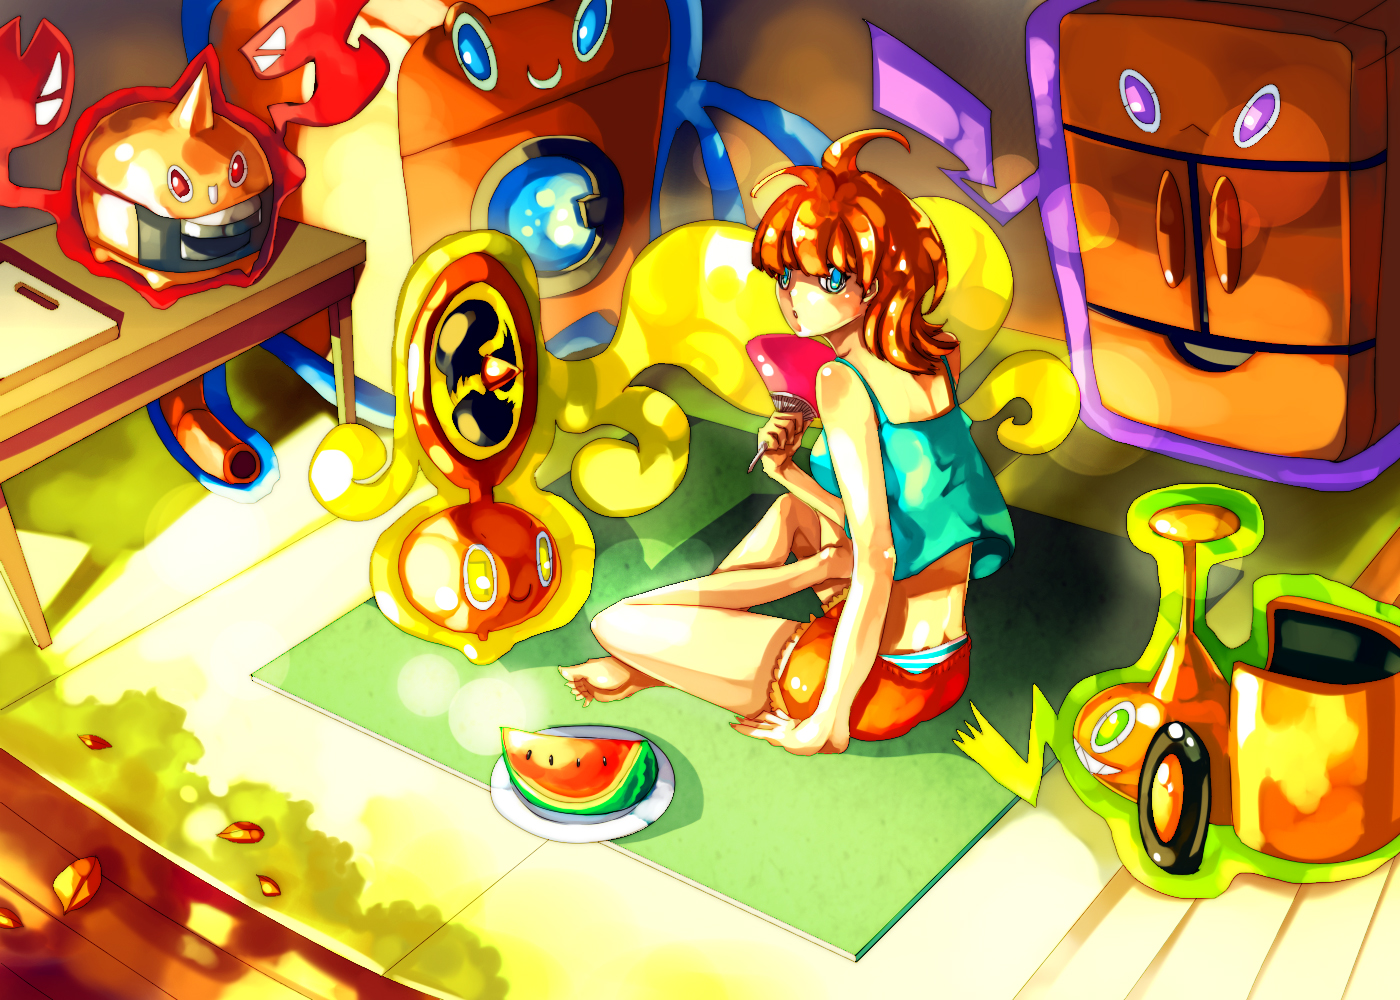 pokemon___rotom_room_by_sa_dui-d4gyk5g.j